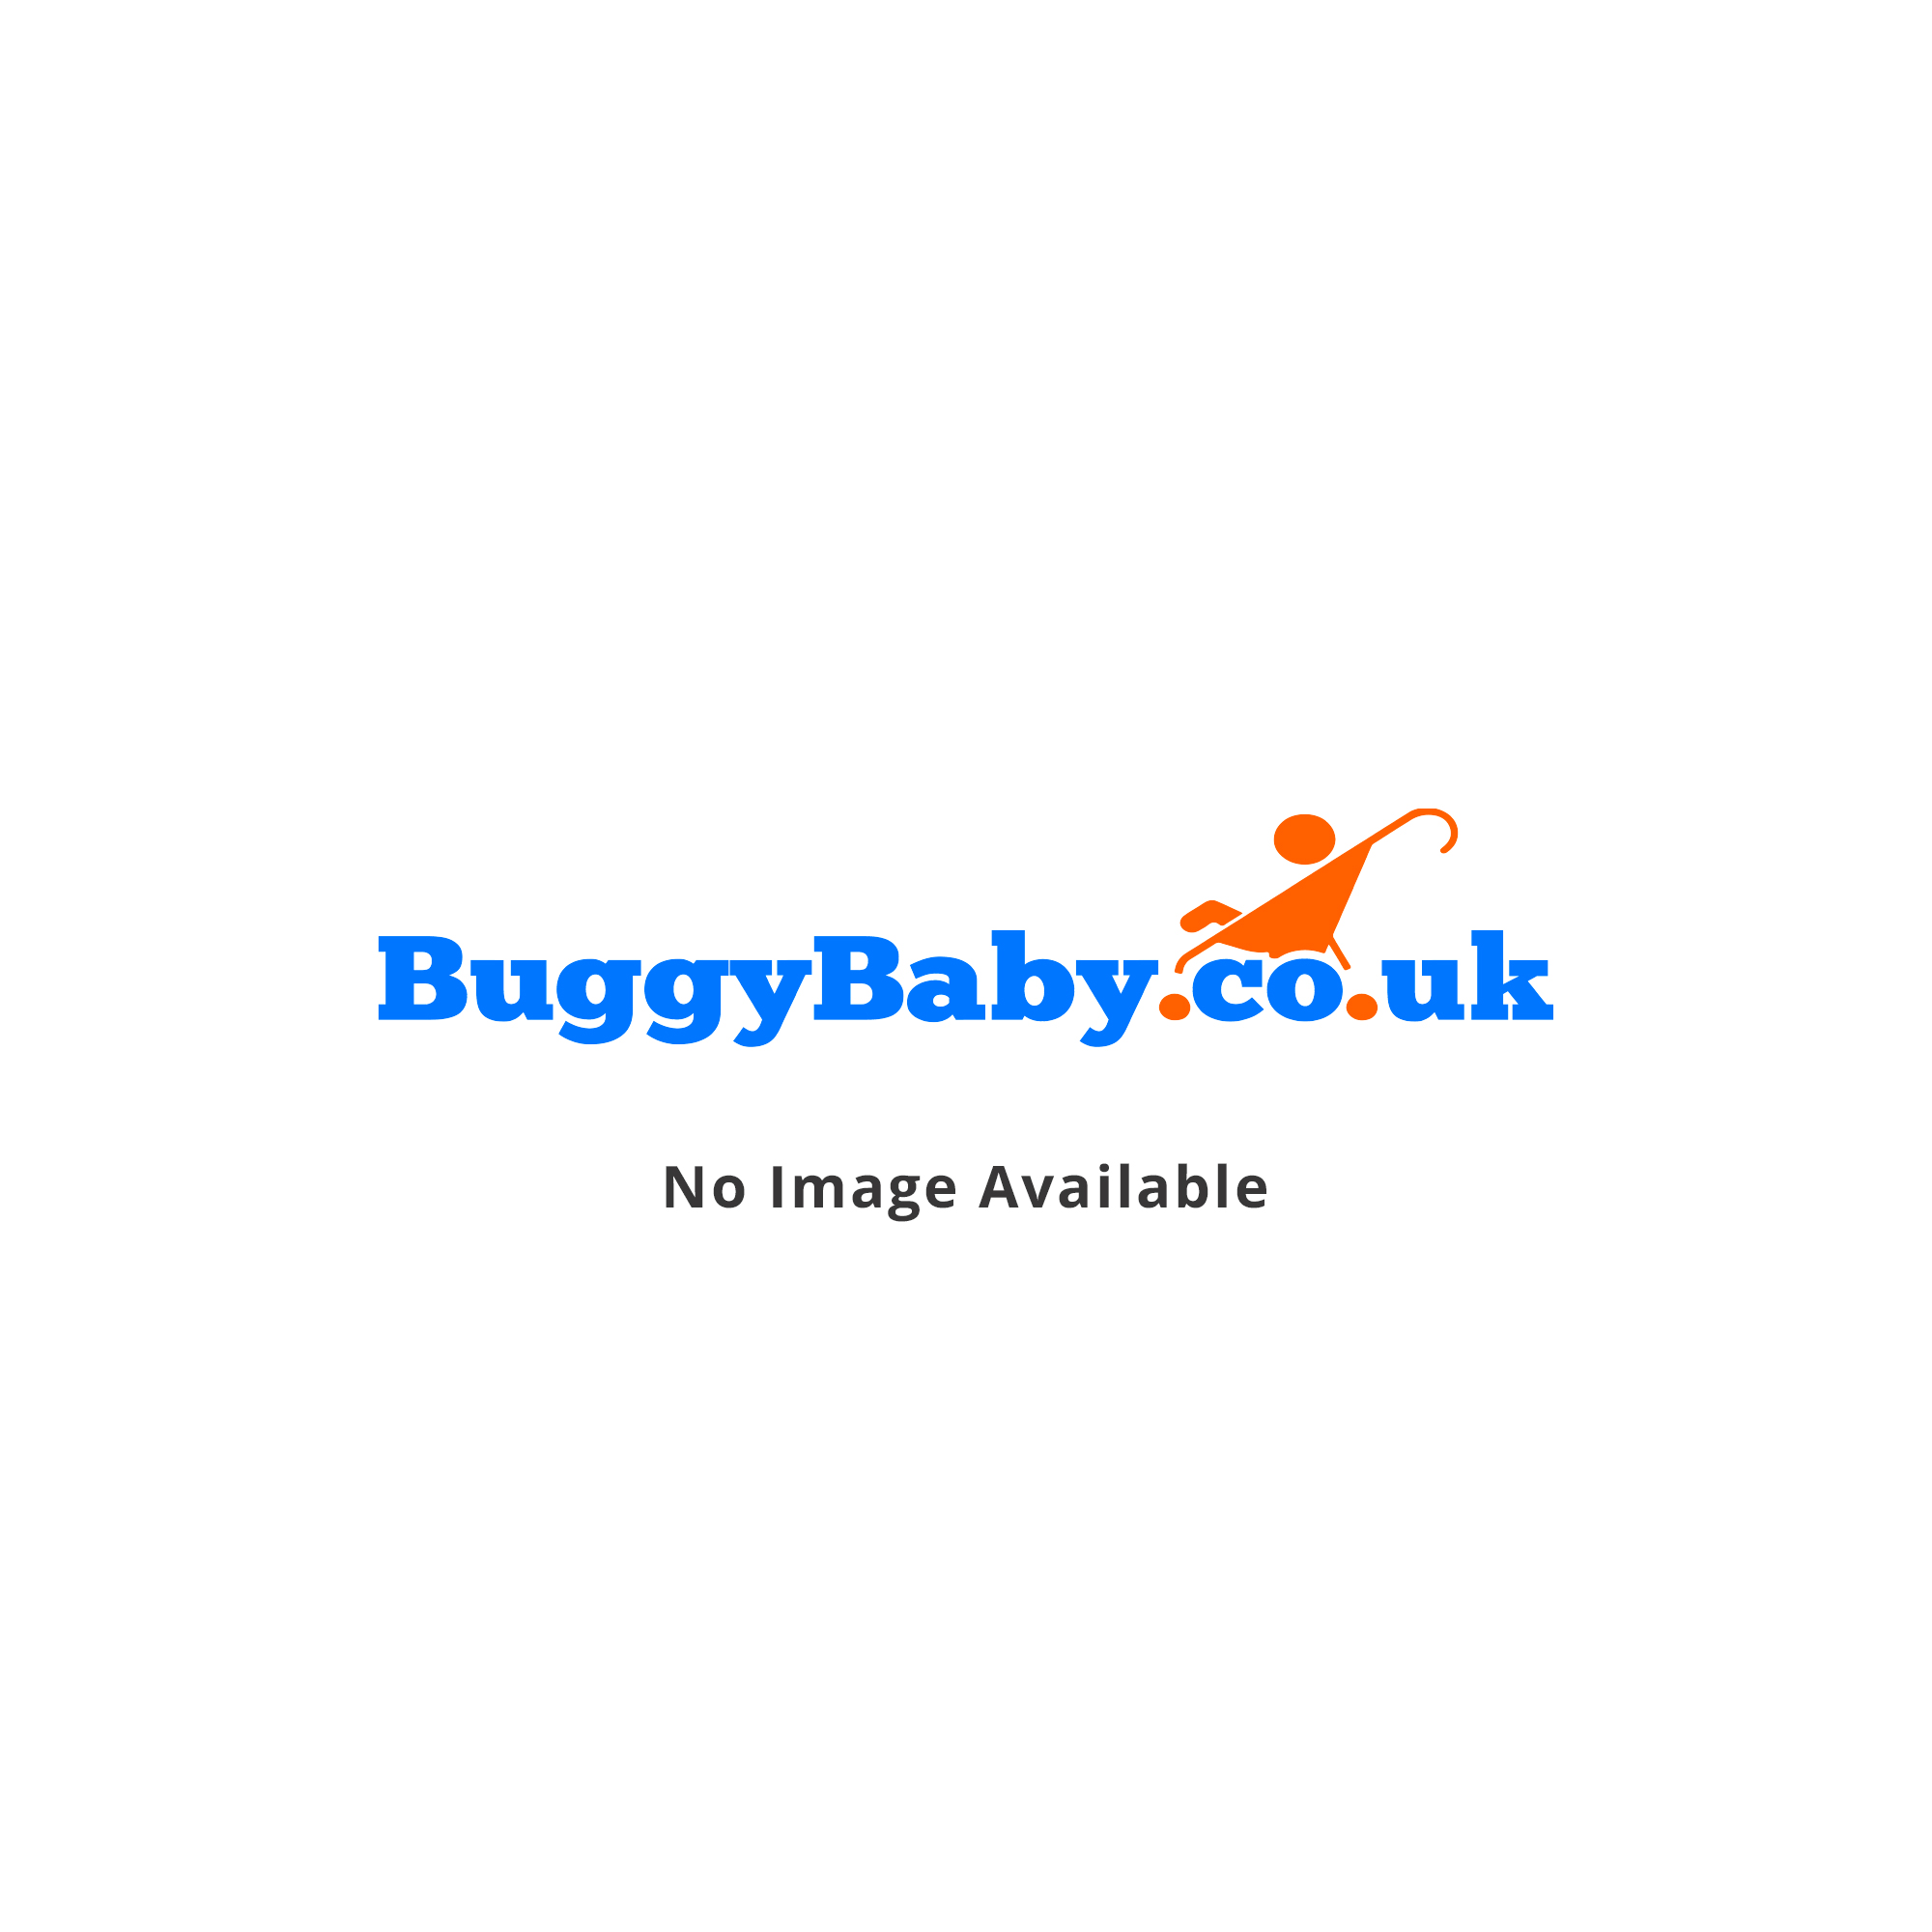 The Best Place To Find Toys For Baby We Carry All The The Top Best Brands For Toys: Buy BOB Snack Tray